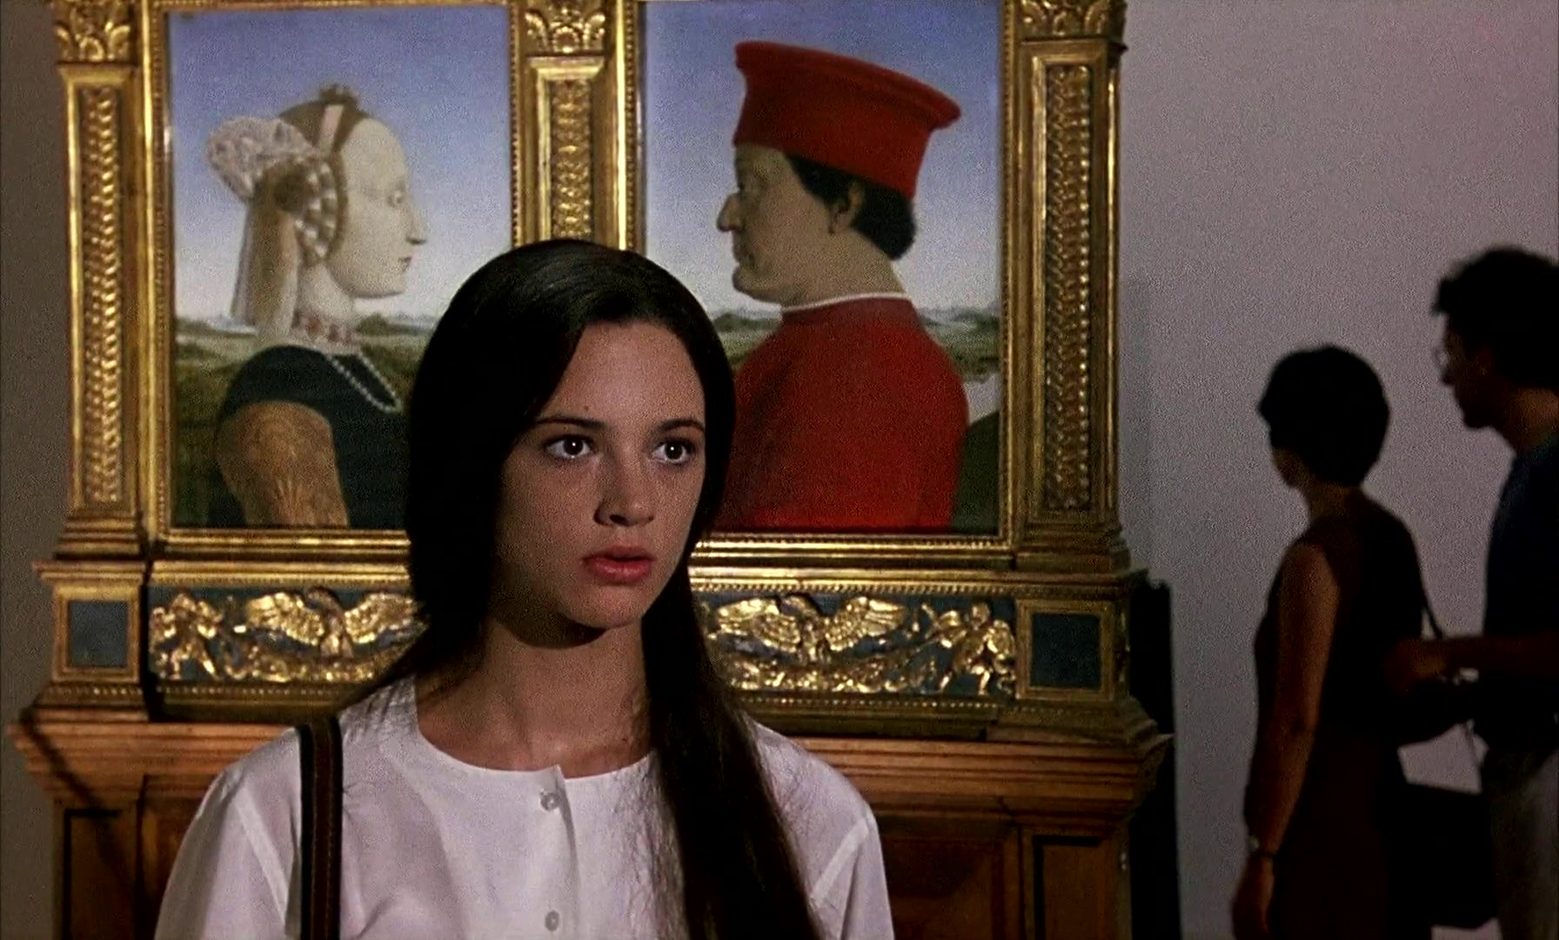 Detective Asia Argento visiting an art gallery in Florence in The Stendhal Syndrome (1996)